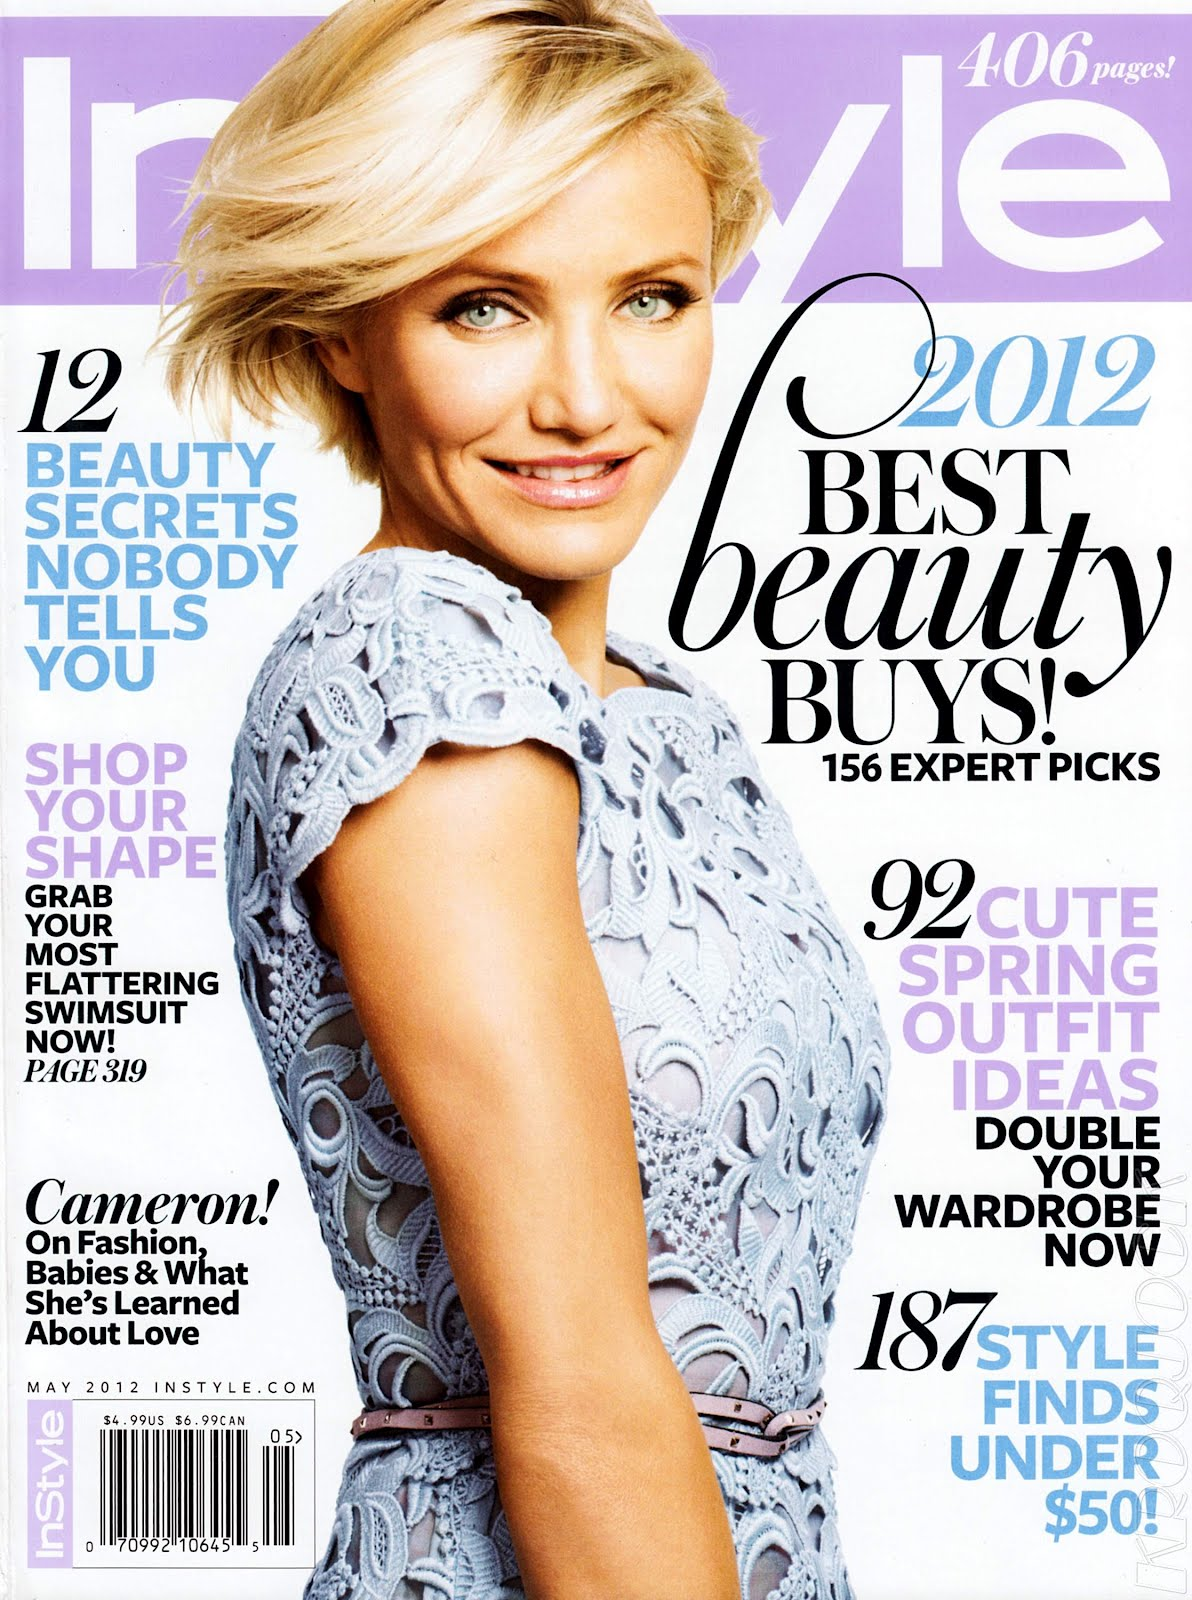 Instyle Magazine Us: Cameron Diaz: May 2012 InStyle Magazine Photoshoot